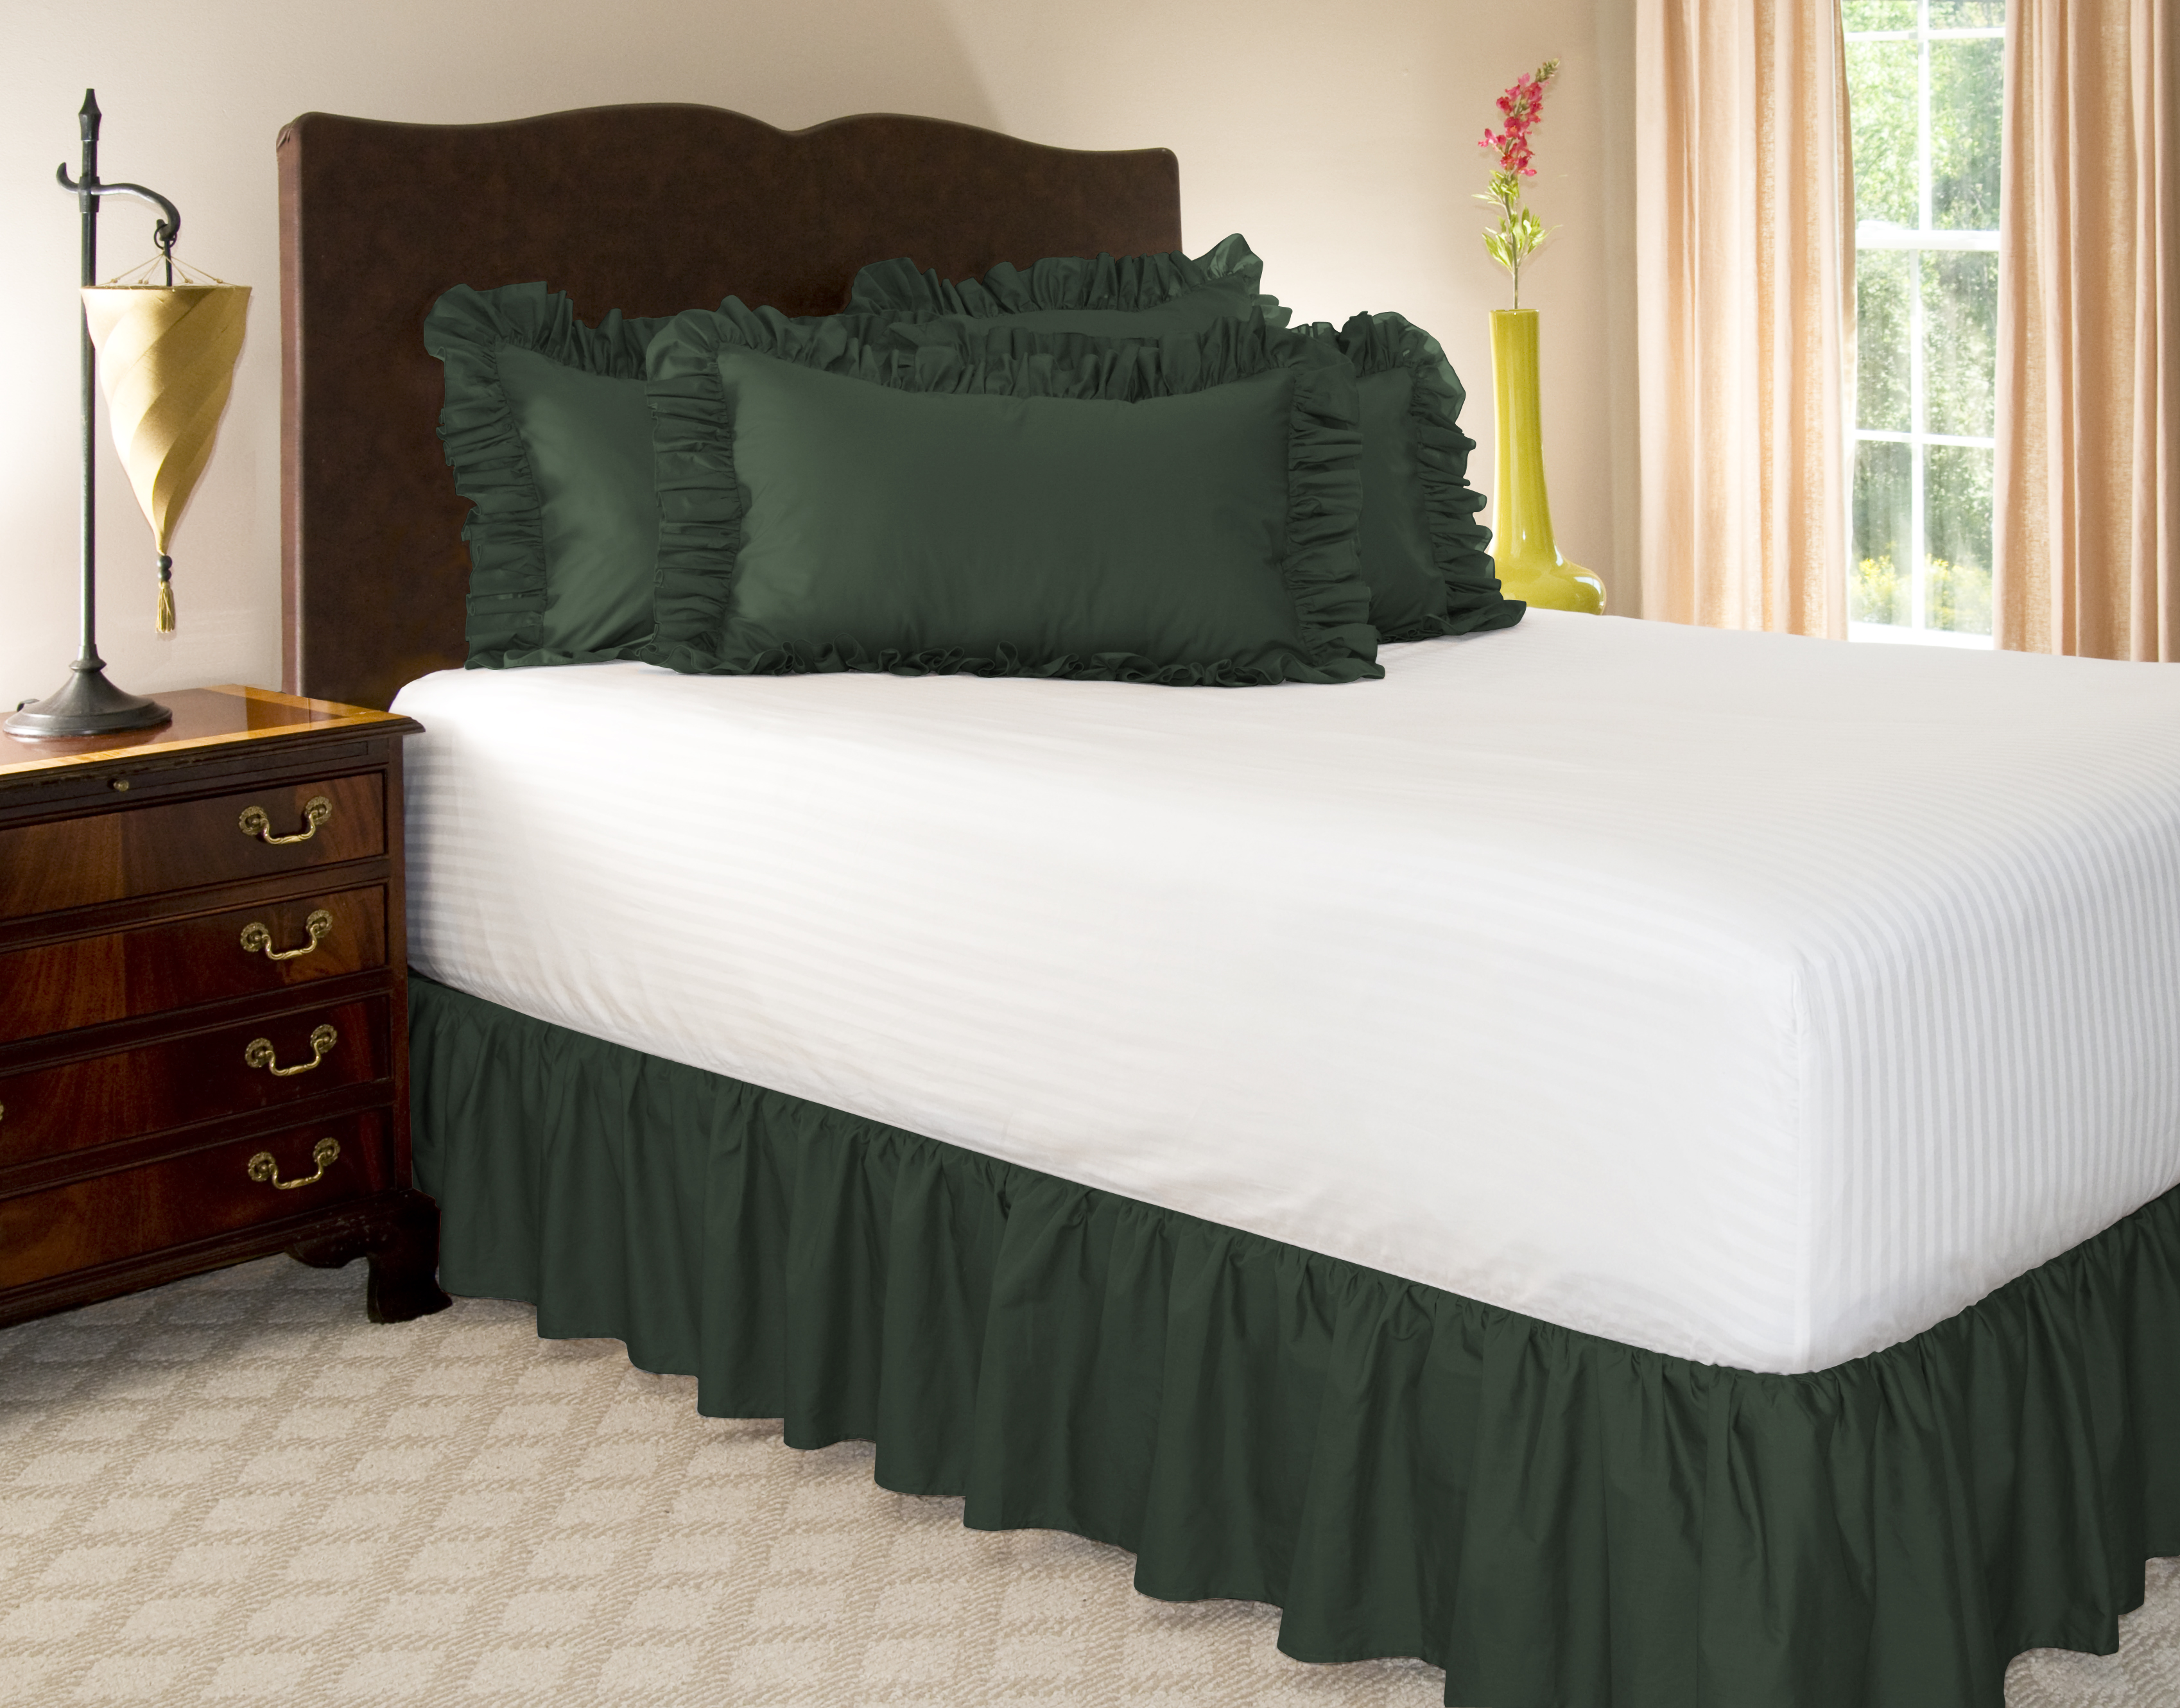 Solid ruffled bed skirt 14 drop length dust ruffle ebay for Frilly bedspreads